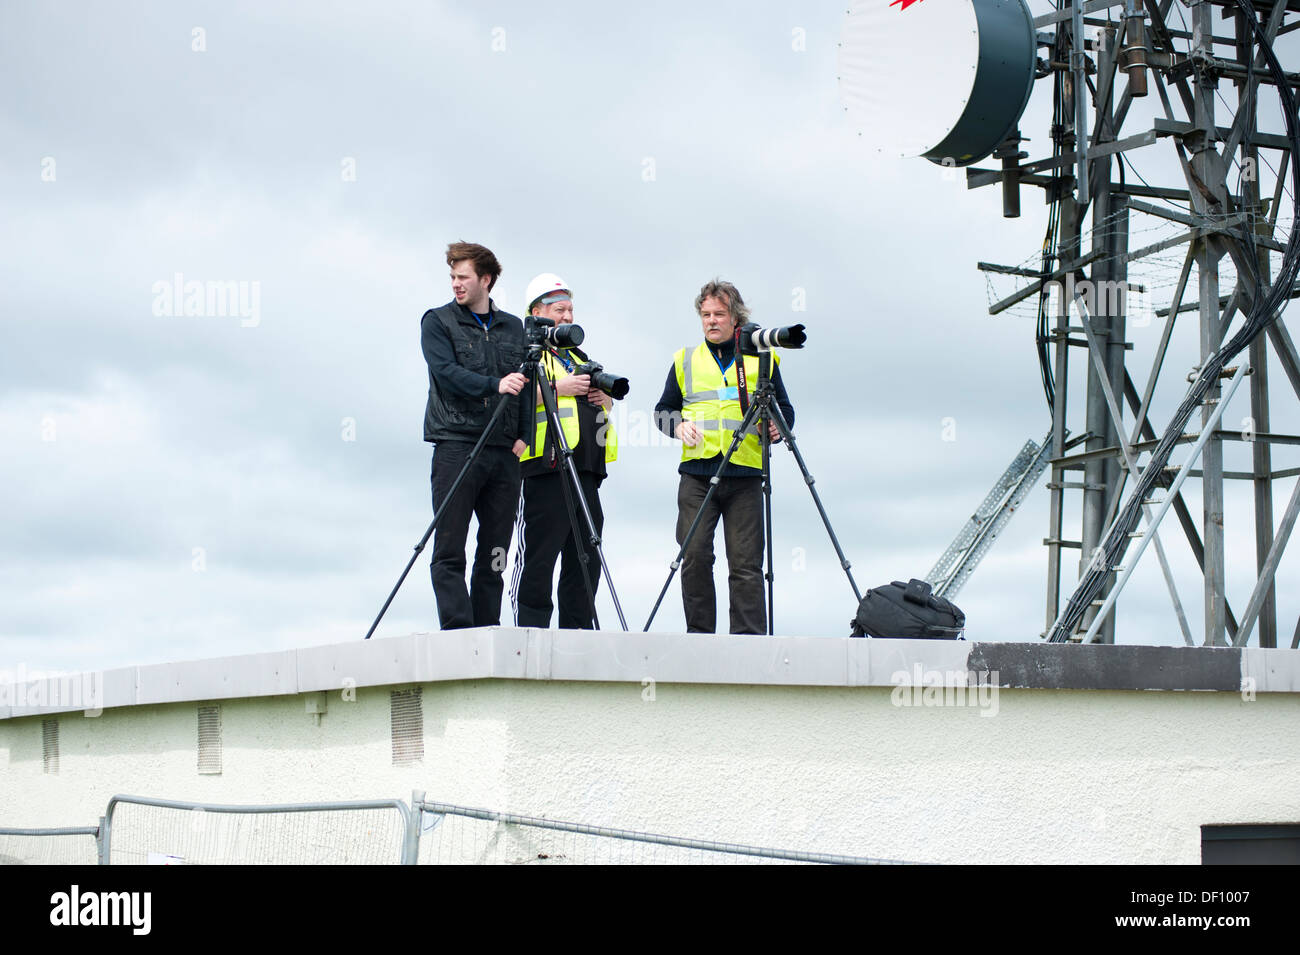 Three photographers on a roof with large antenna telecom mast - Stock Image